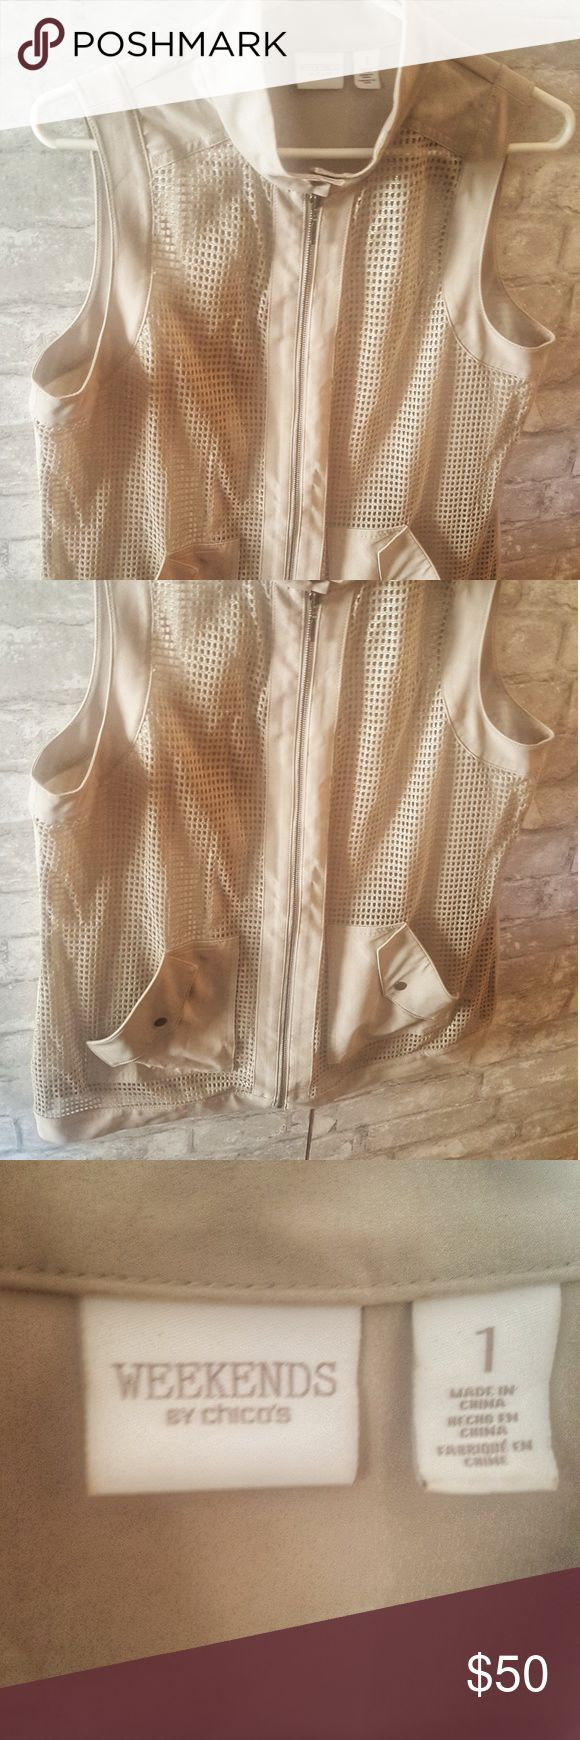 ⏰⏰⏰Chicos Weekend Mesh Metallic Vest Metallic Weave Mesh vest. Very light and comfortable.  Great with a white tee and jeans. Chico's Jackets & Coats Vests